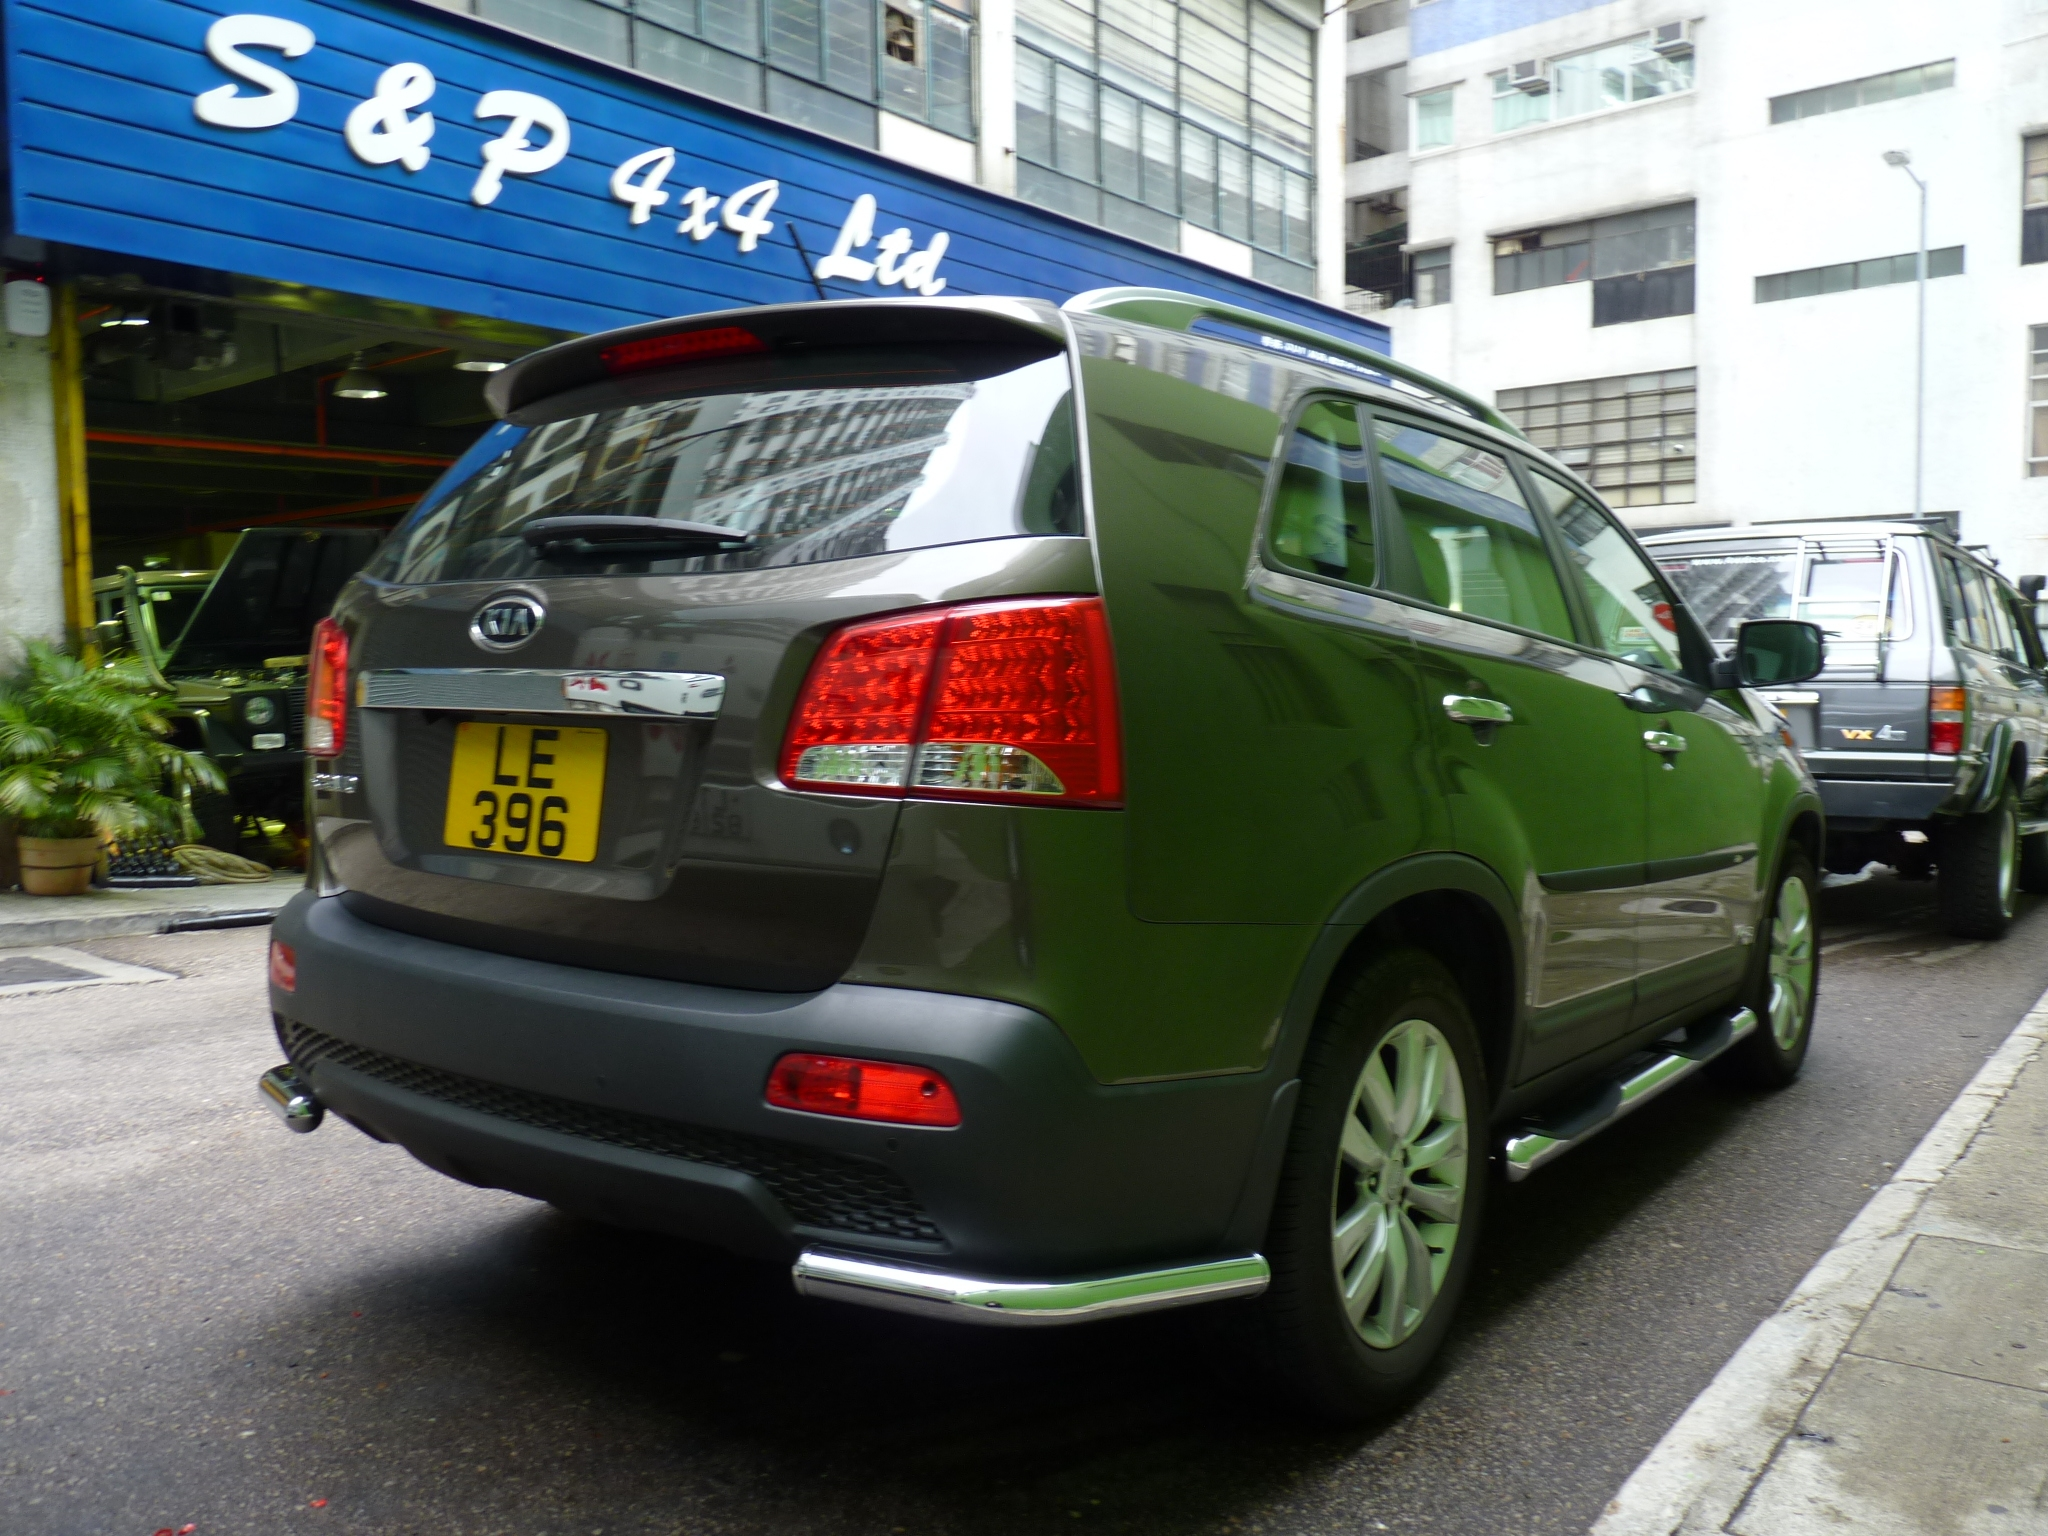 Sp 4x4 Ltd Kia Sorento Accessories Germany Cobra Made High Quality S Steel Chrome Accessoriesheavy Duty Rear Conner Bar For 2010 New Suv